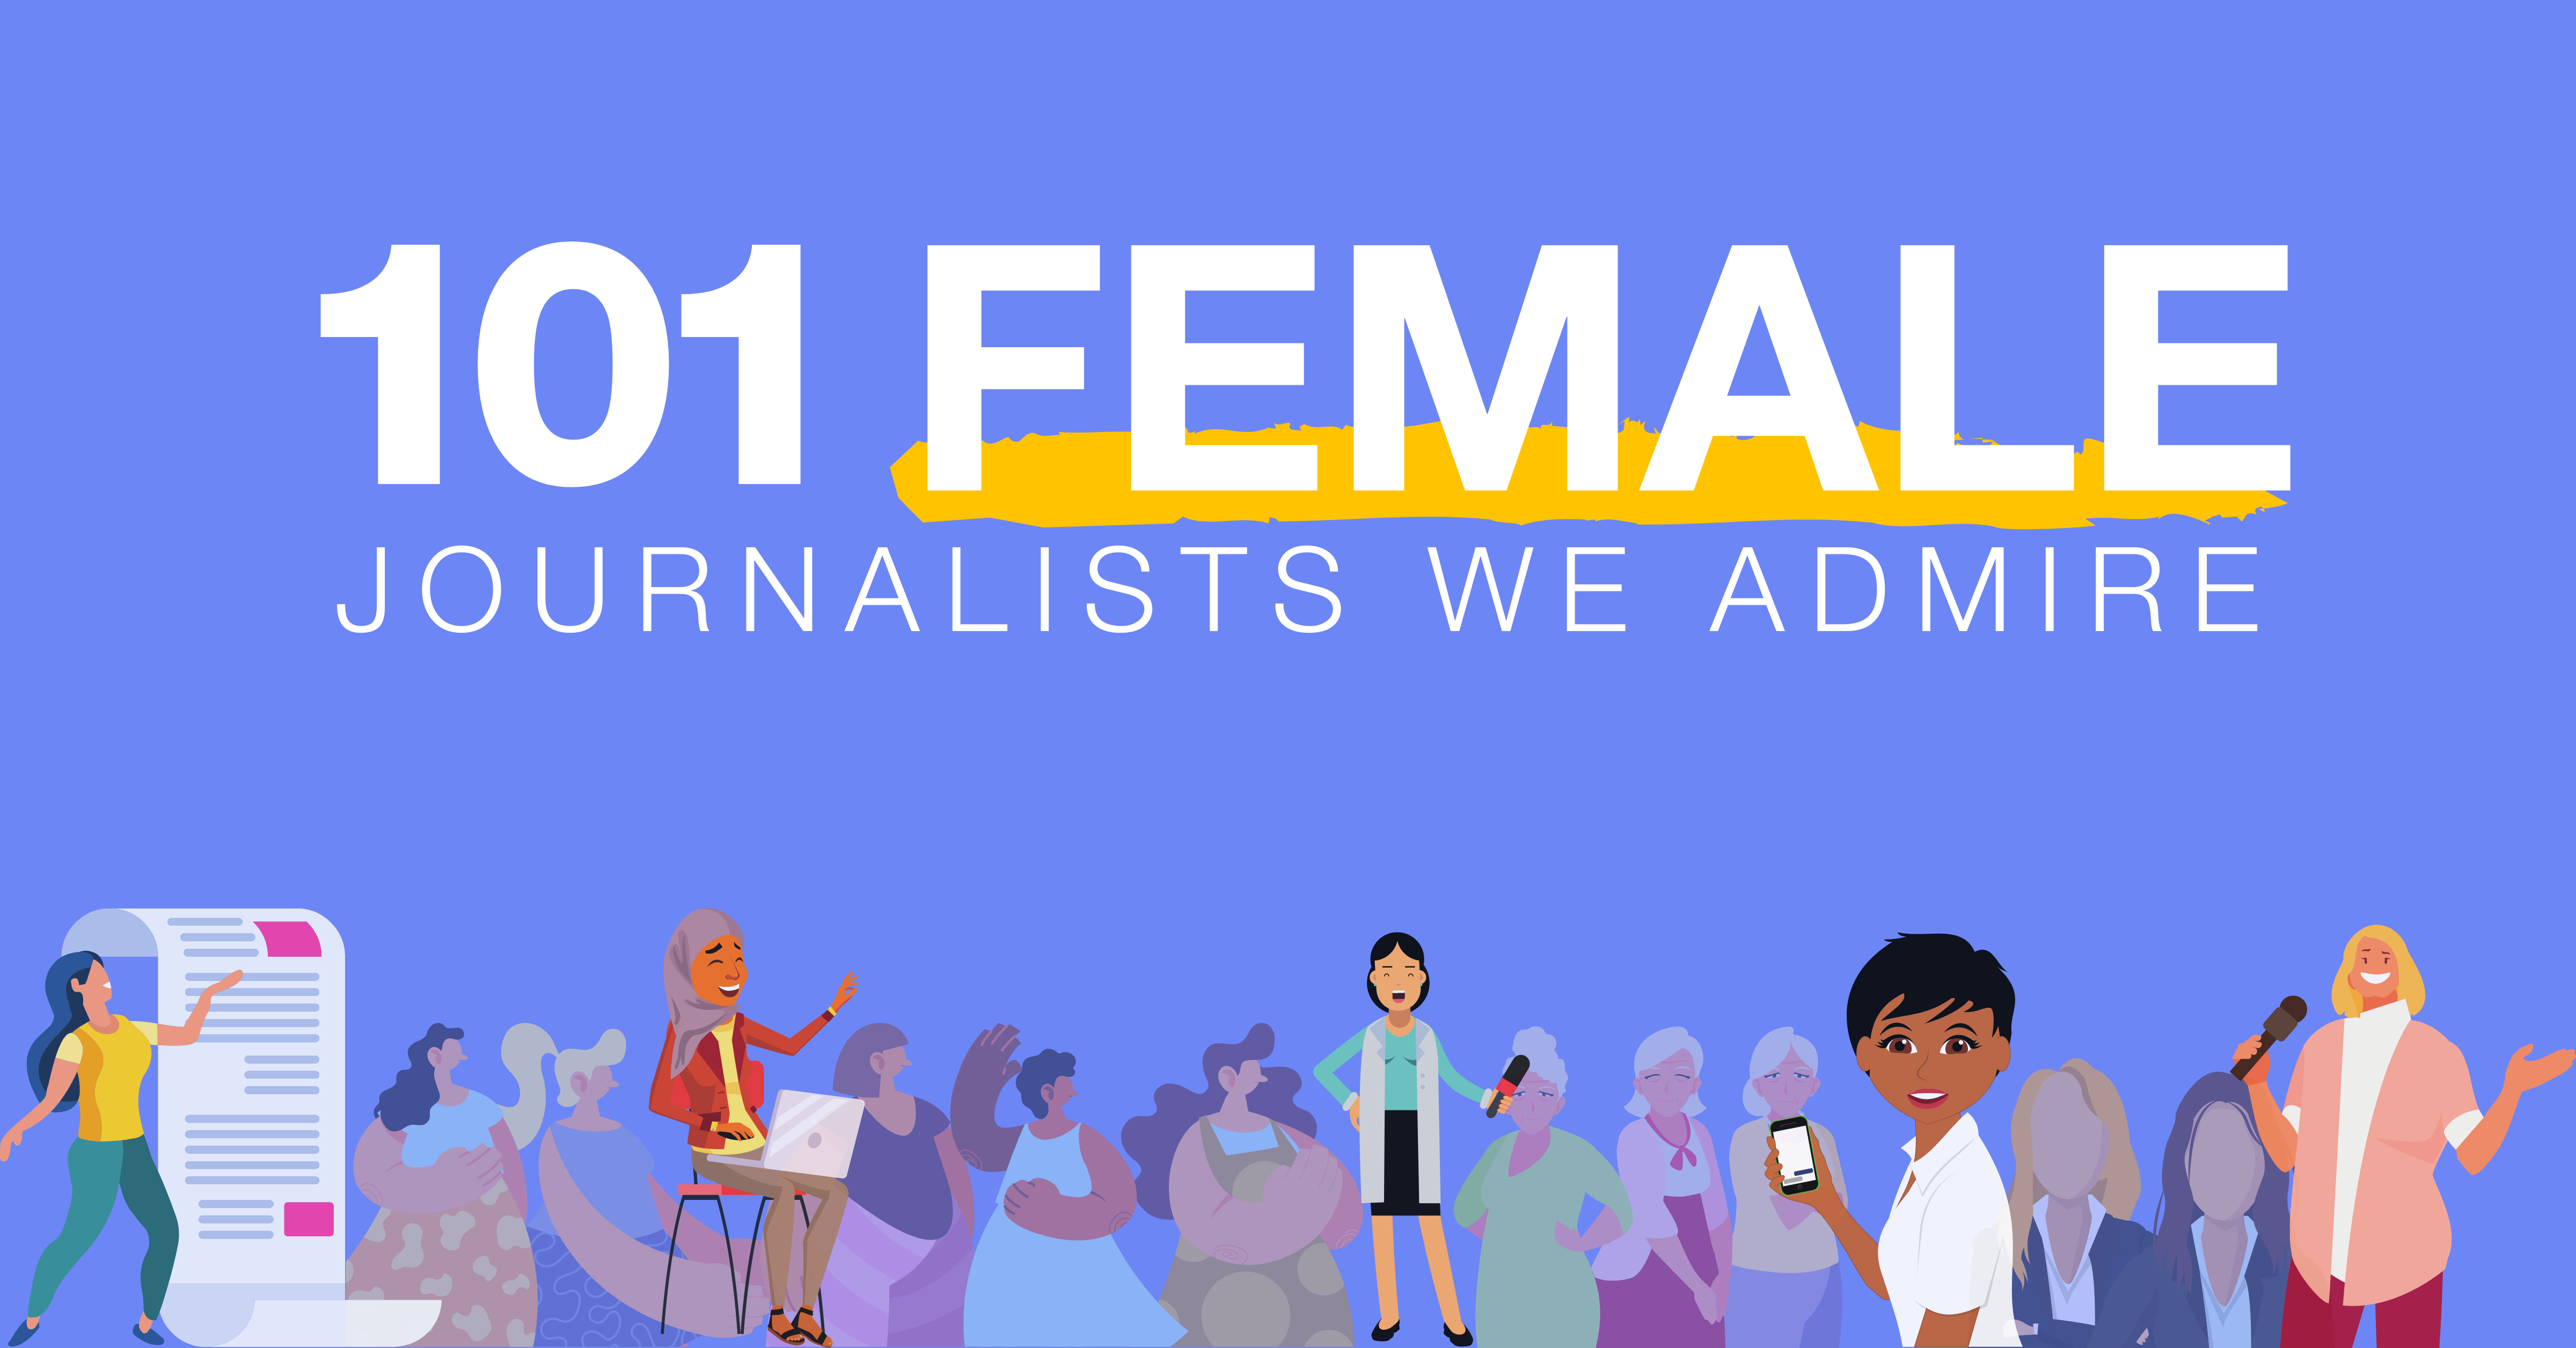 101 Female Journalists We Admire